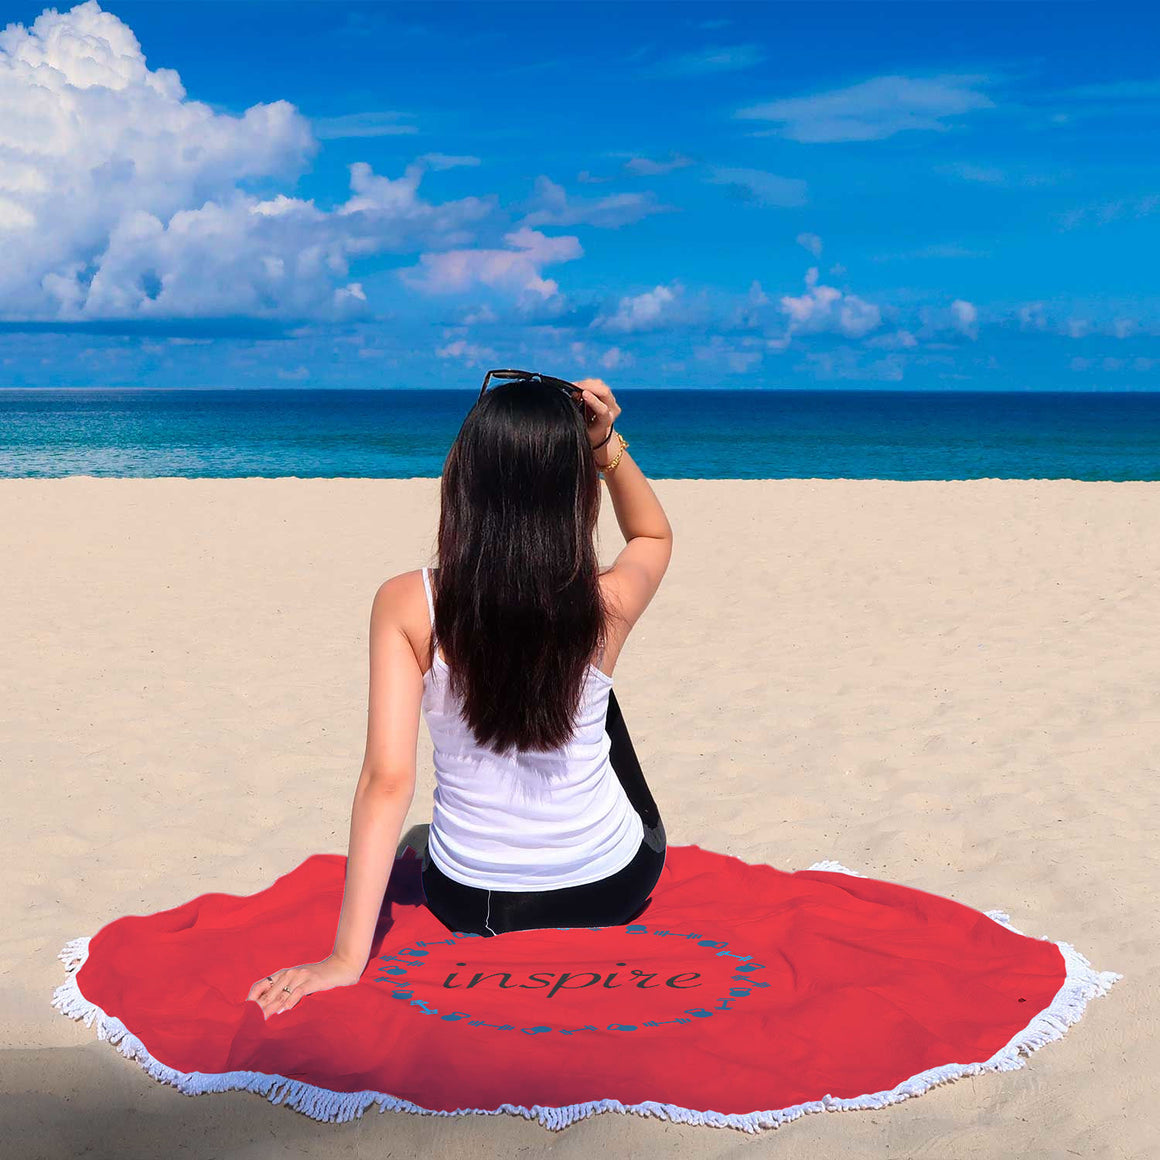 Red Round Beach Blanket FitGirls Inspire